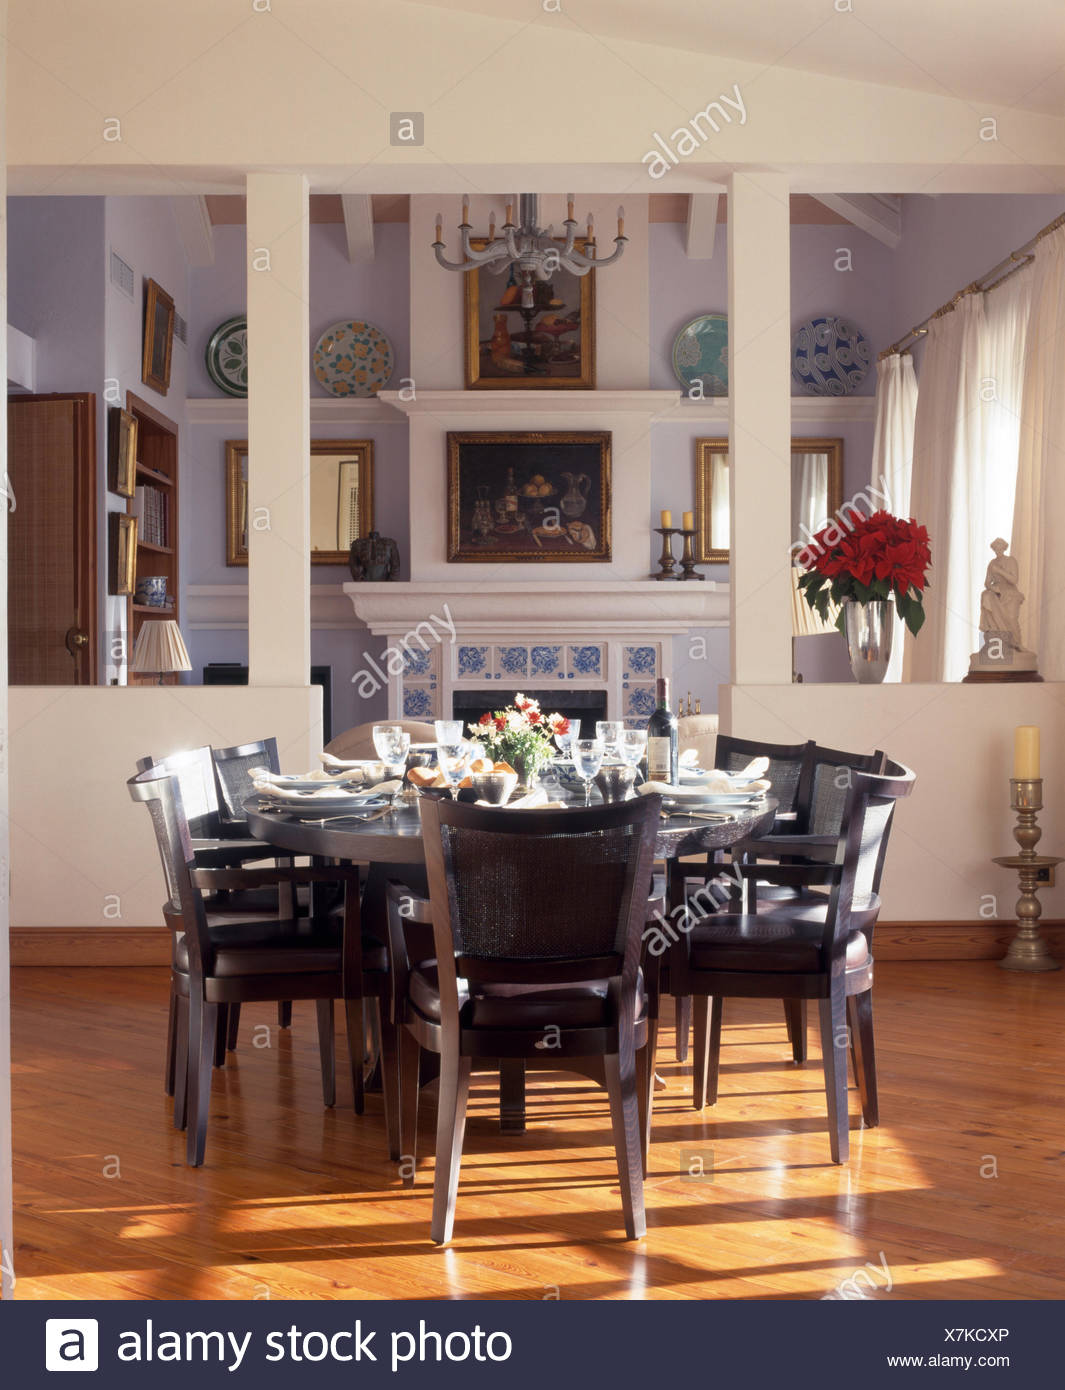 Dark Grey Chairs At Table Set For Lunch In Modern Spanish Dining Room Stock Photo Alamy